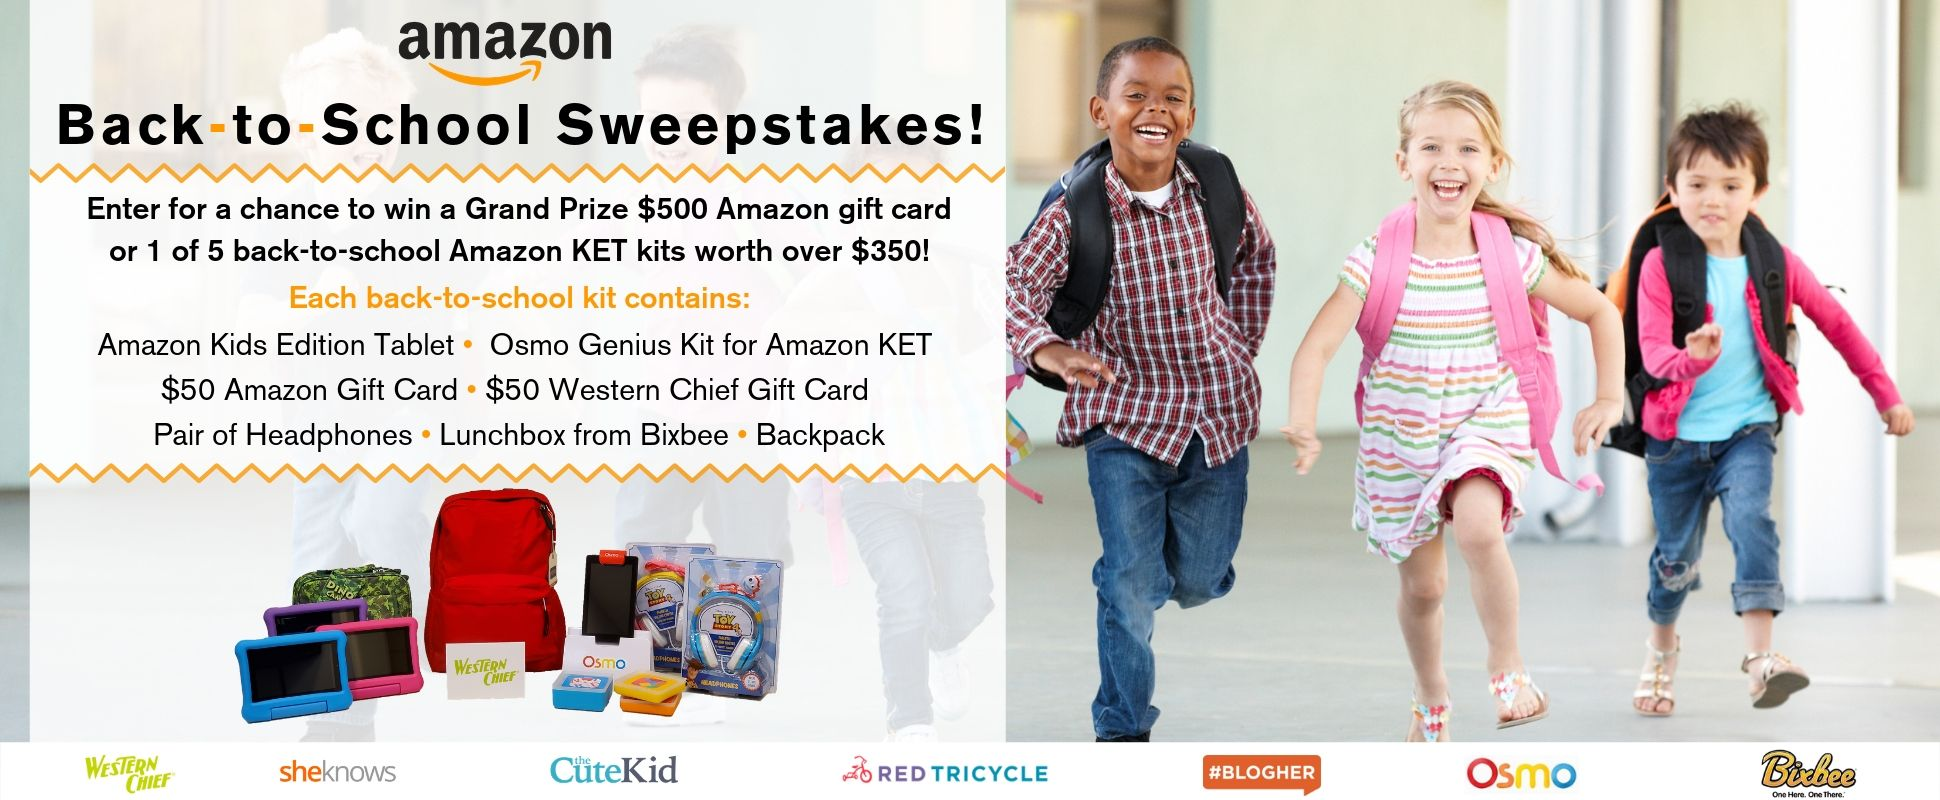 Enter Red Tricycle's Back-to-School Sweepstakes for your chance to win a Grand Prize $500 Amazon gift card or 1 of 5 back-to-school Amazon KET kits worth over $350 each!